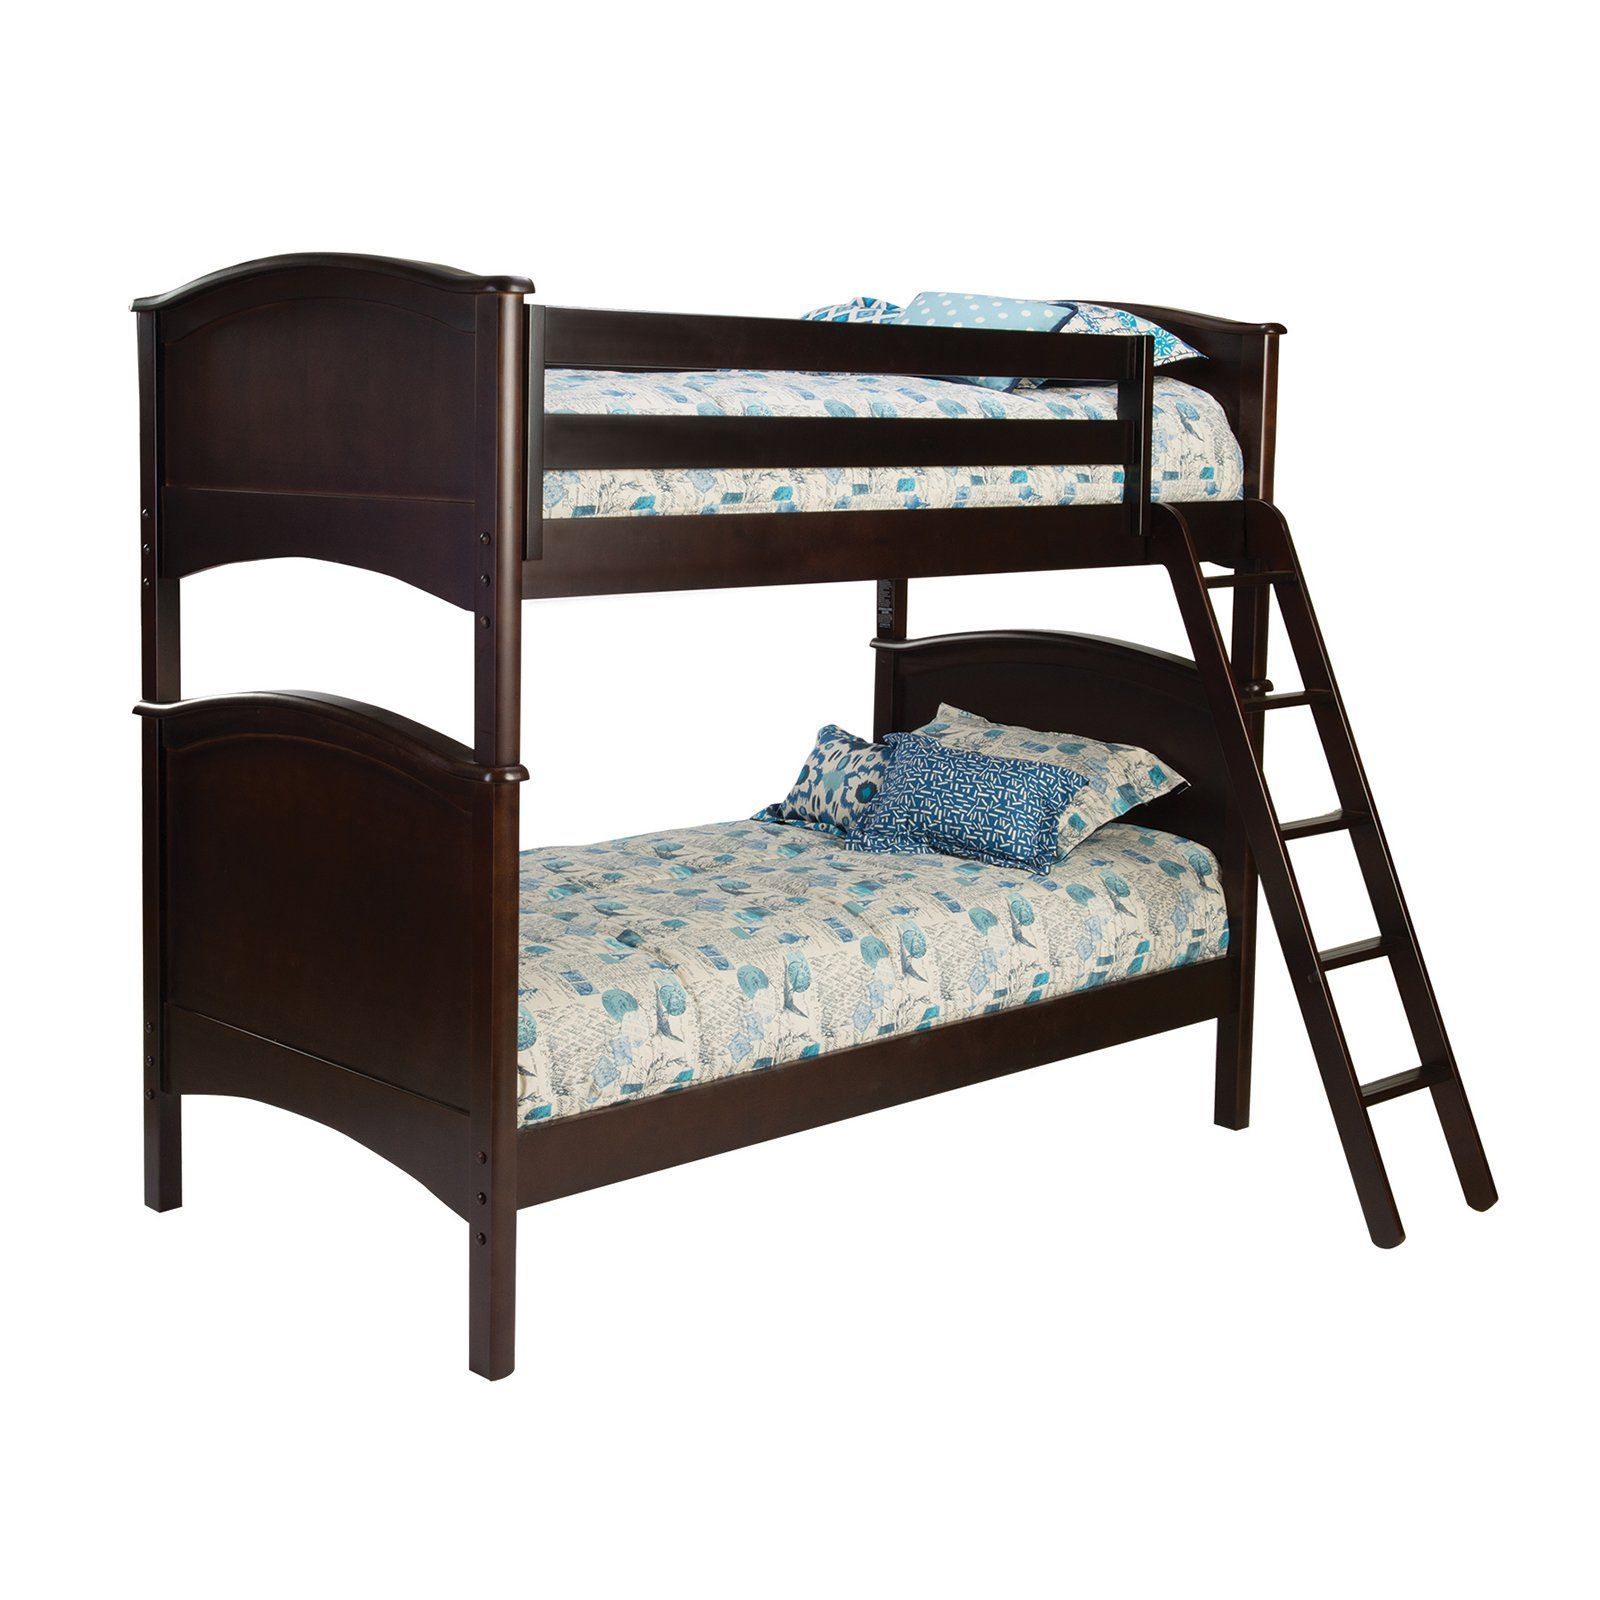 Cooley Twin over Twin Bunk Bed VER079 Bunk beds, Twin